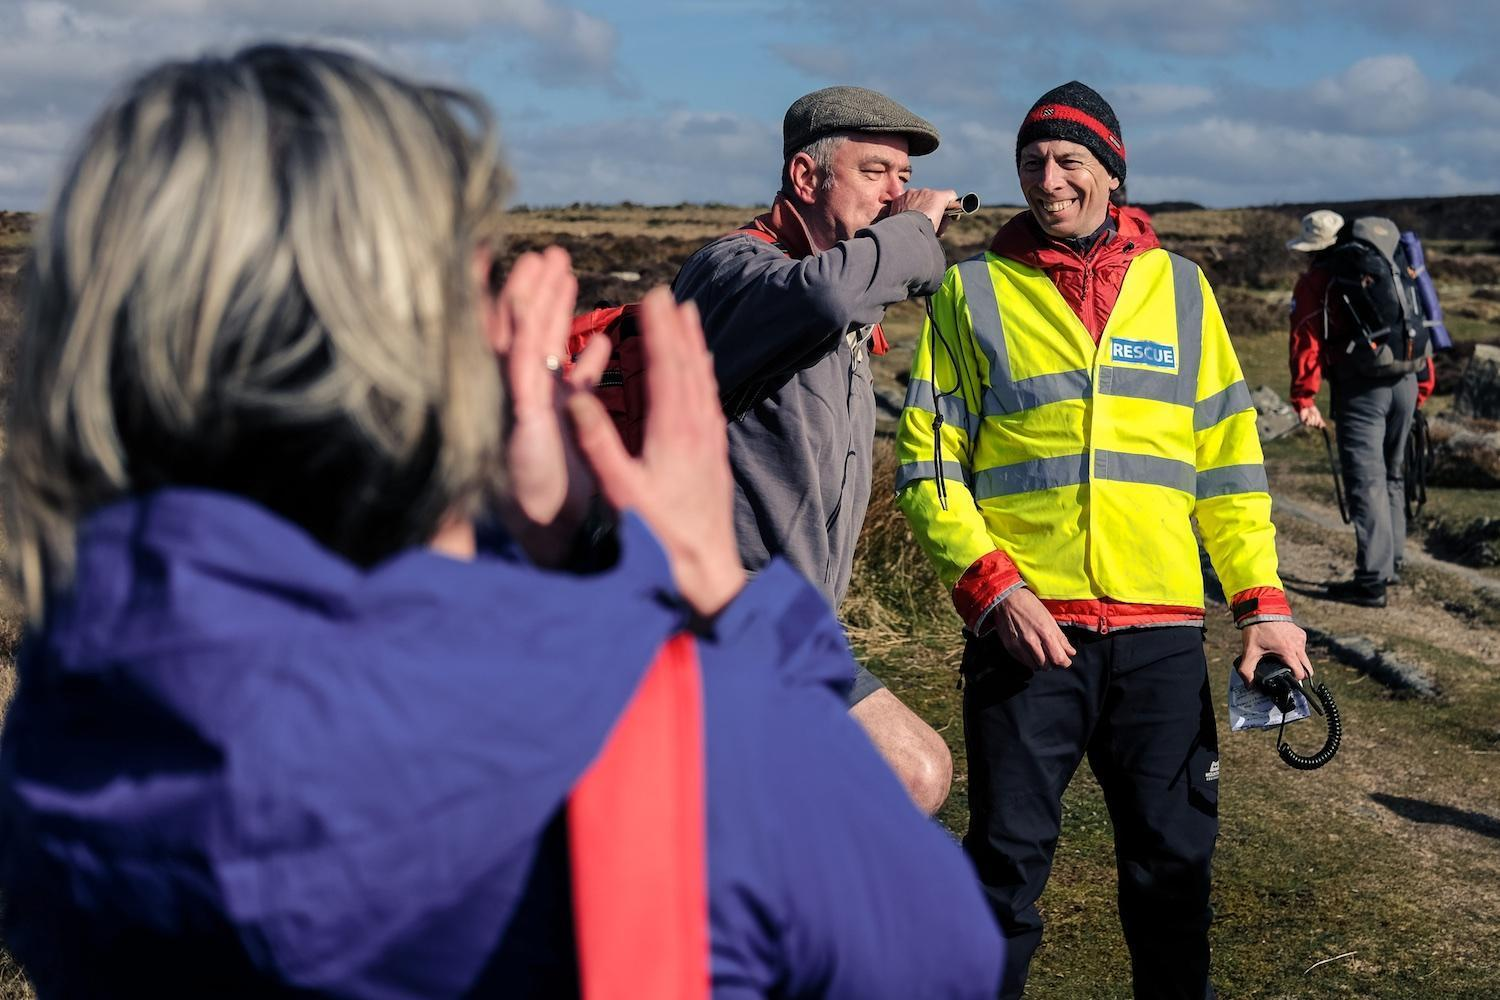 Dartmoor Search and Rescue Ashburton's Templer Way fundraiser